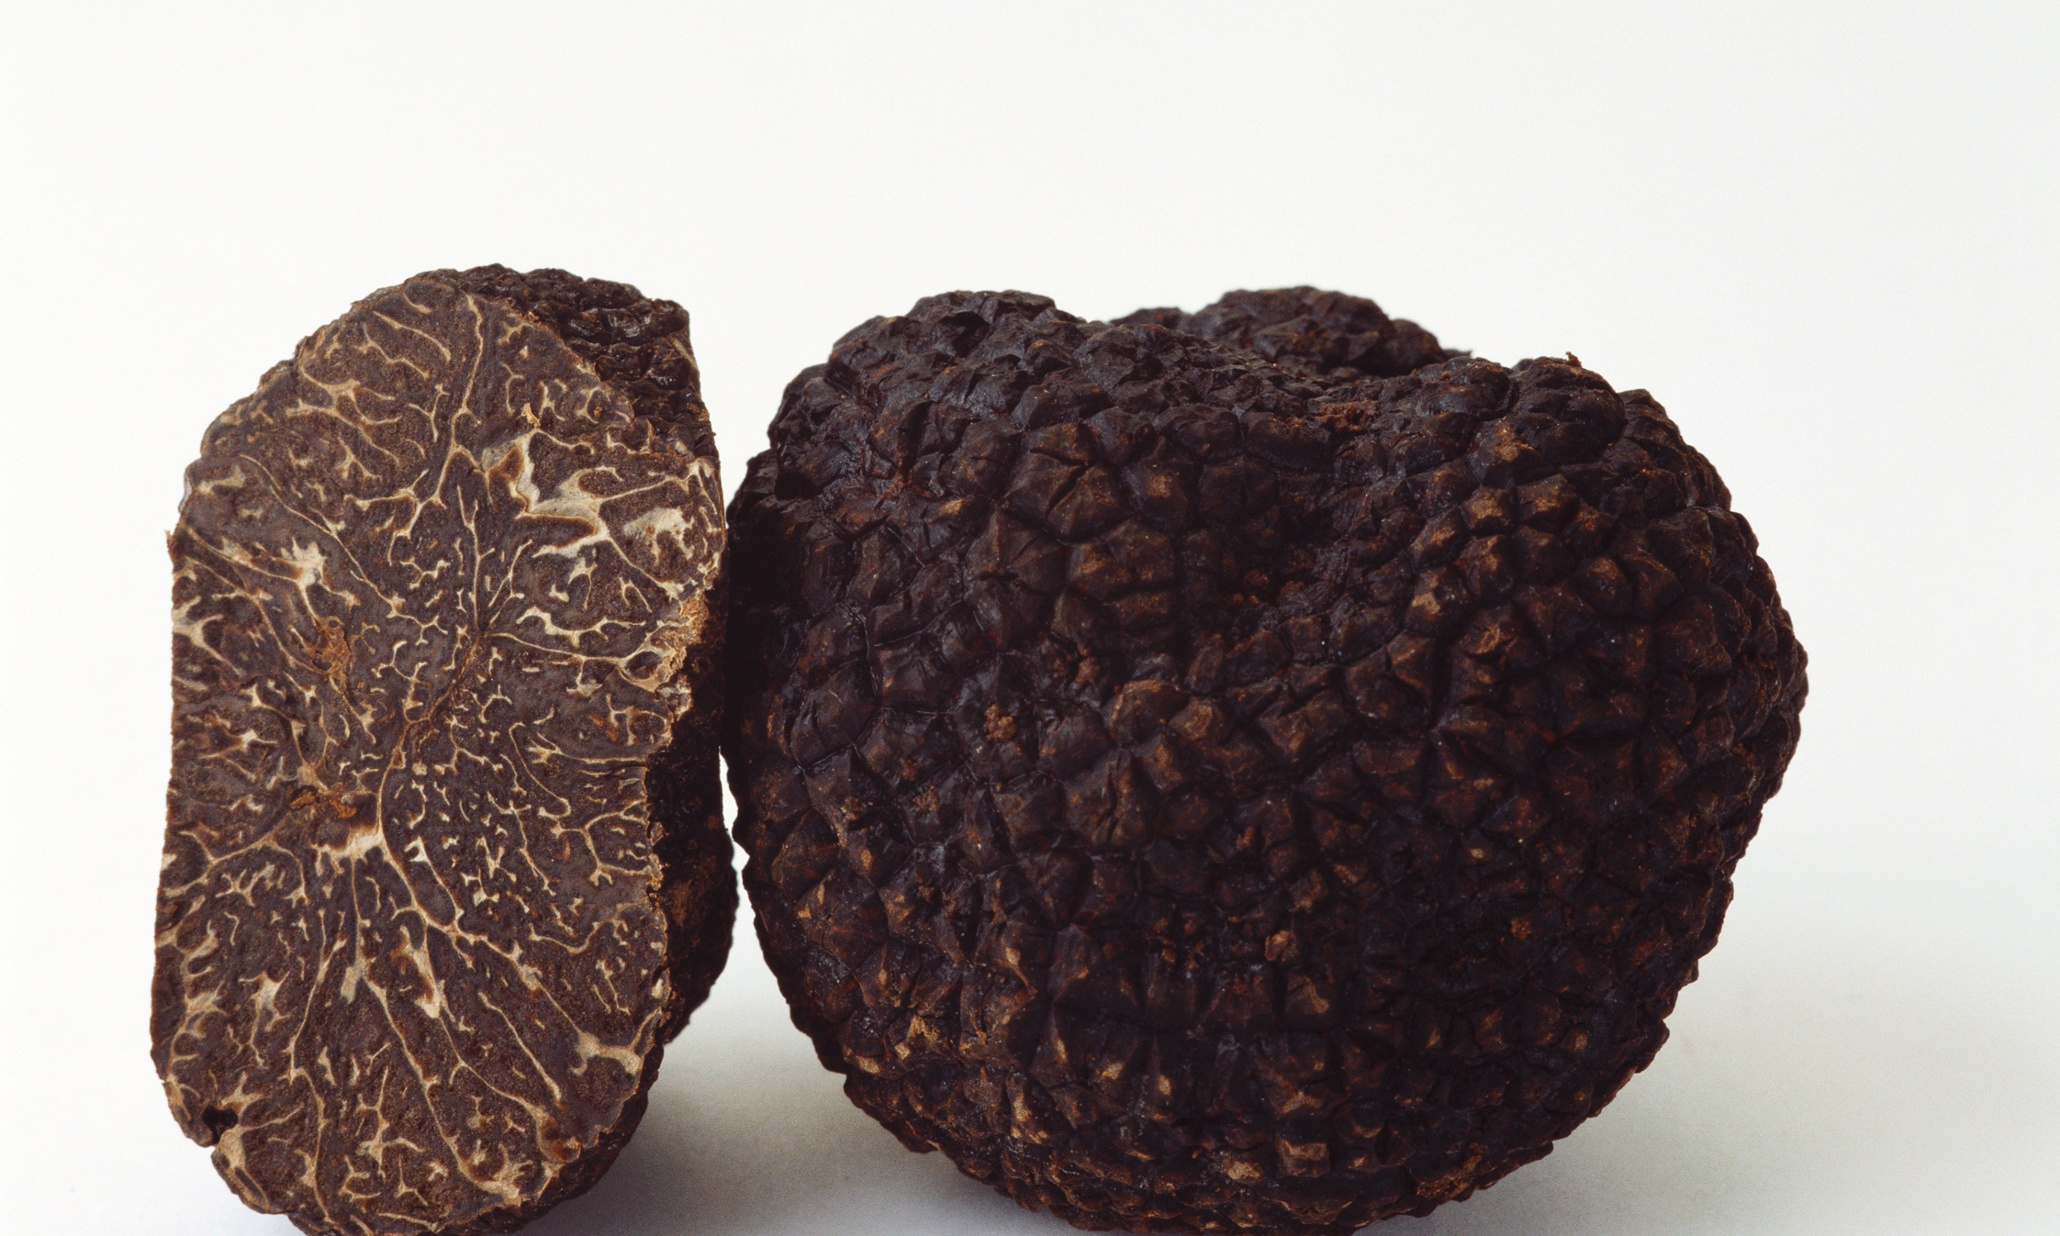 South Africa's first black diamond truffle discovered